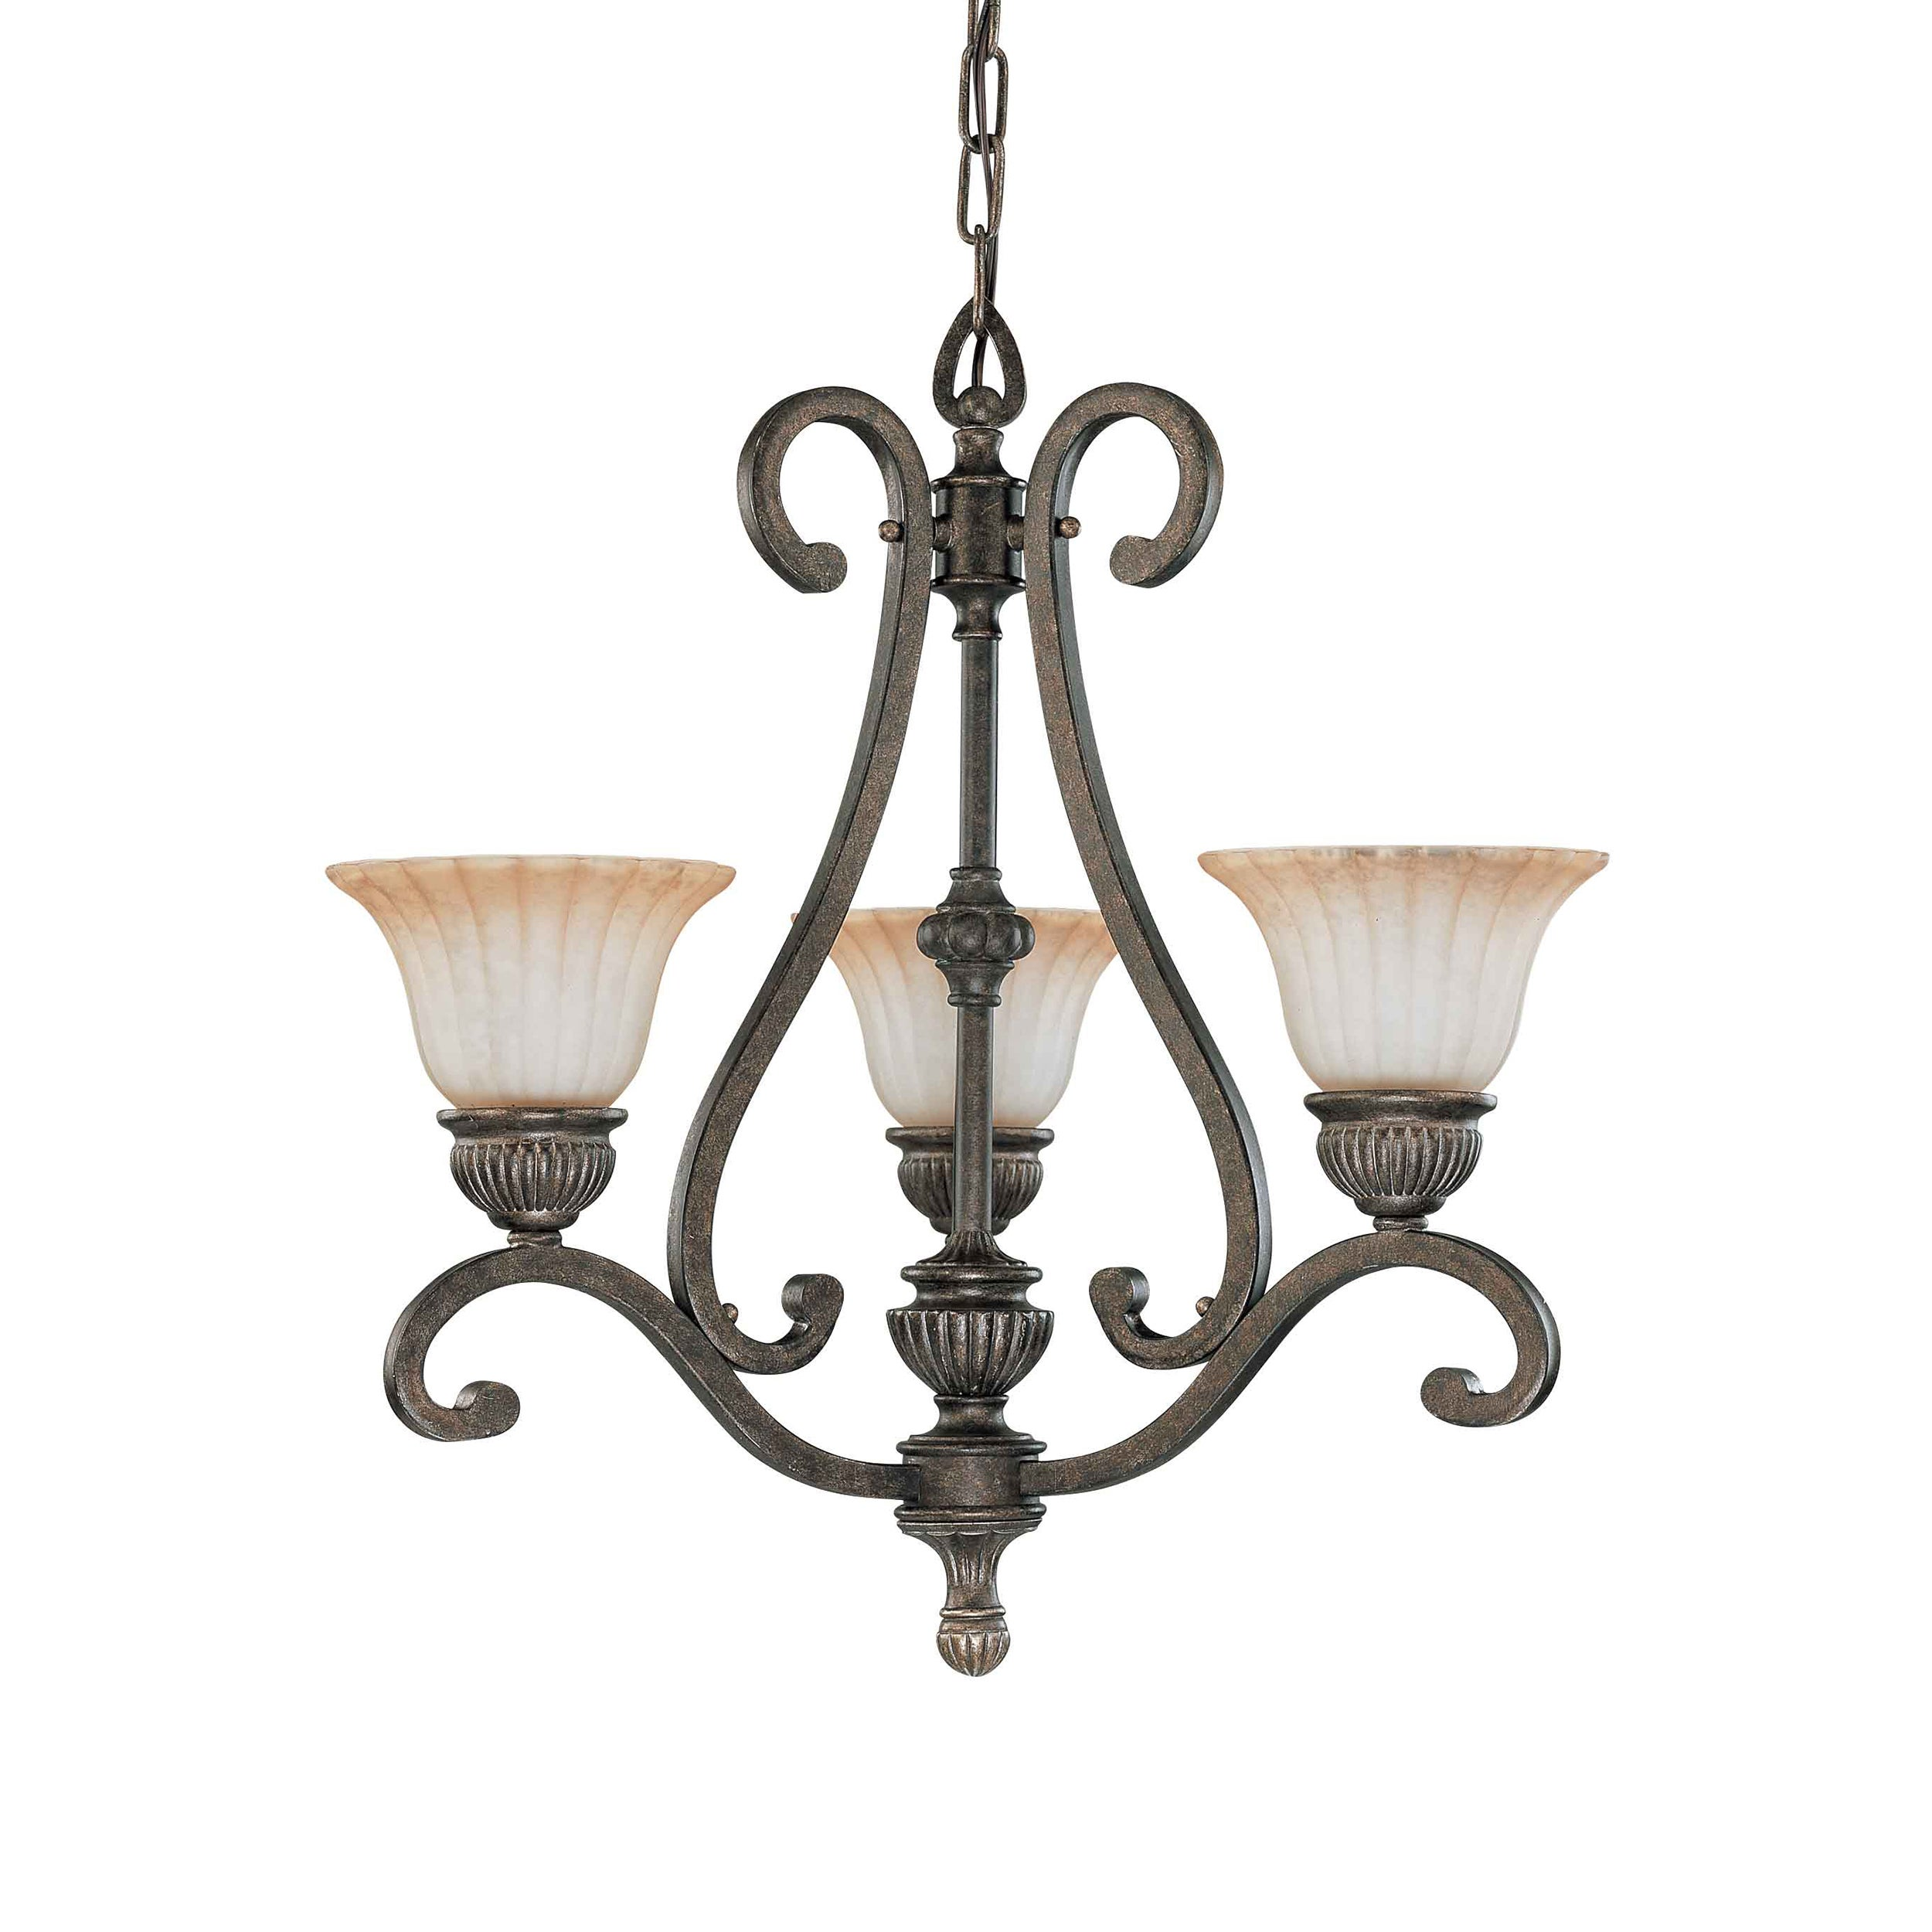 Fortunata 3 Light Lisbon Bronze With Corvo Amber Wash Glass Chandelier - Thumbnail 0